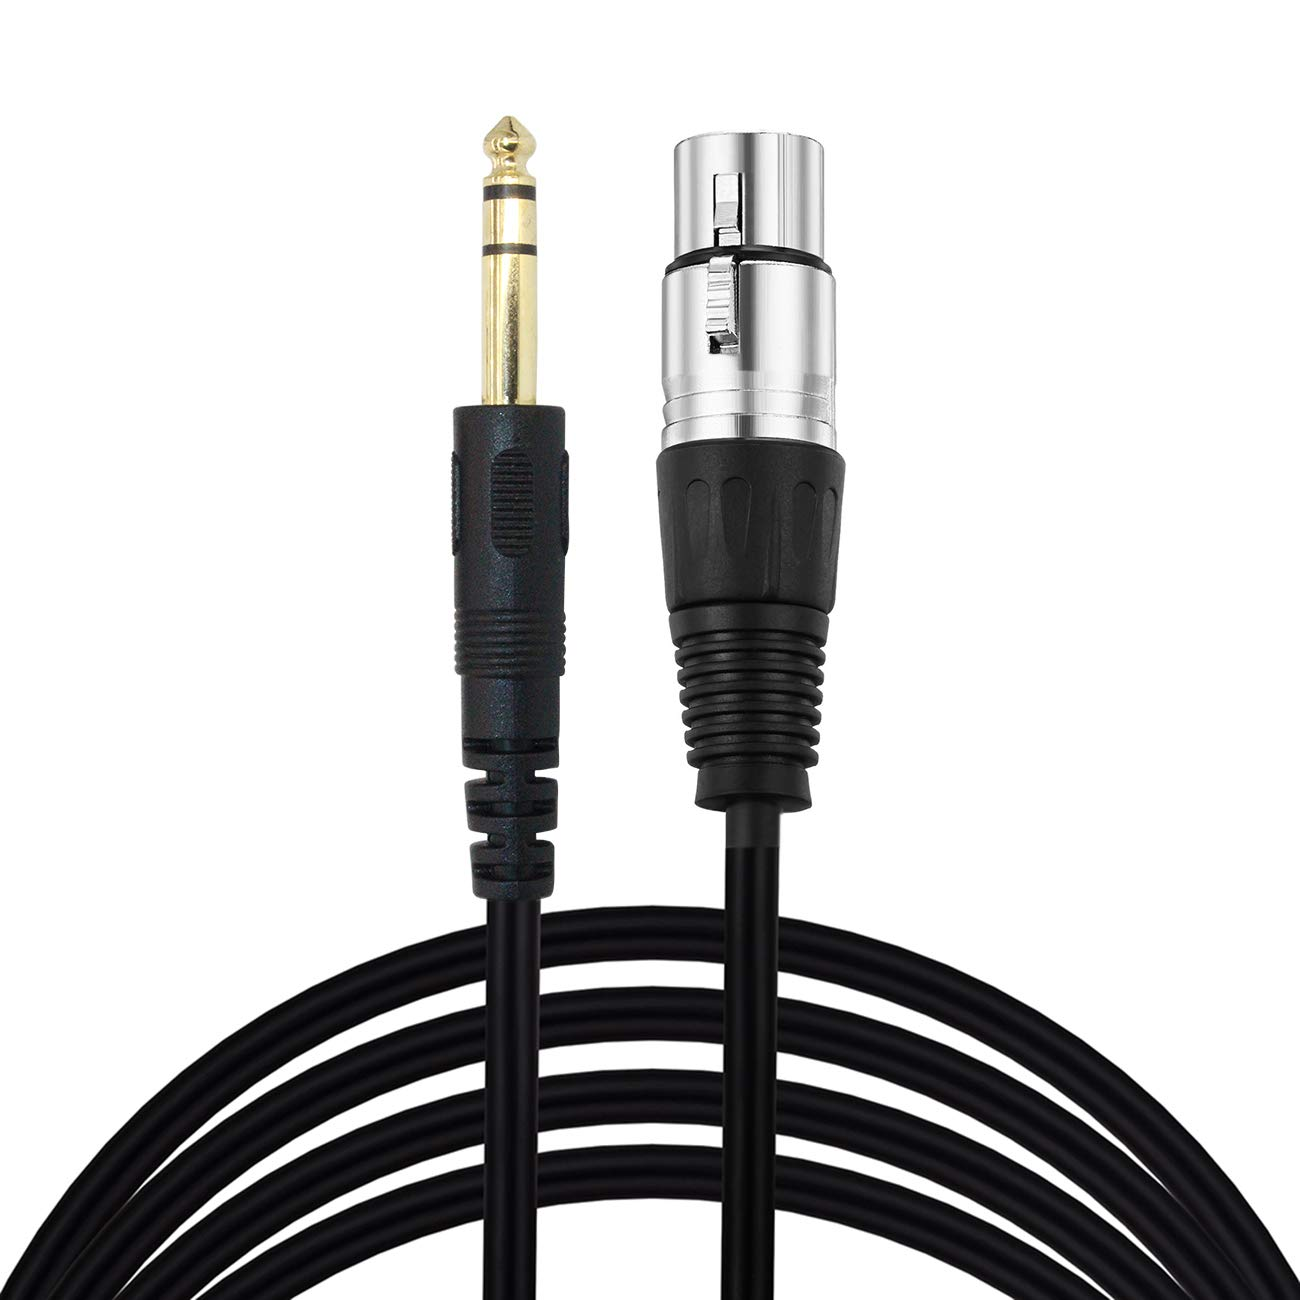 LiuTian XLR 3Pin Female to 6.35mm Mono Male 1/4 inch Audio Cable, XLR Female to 6.35mm 1/4'' Male Stereo Mic Audio Converter Adapter Cable, 30Feet / Black by LiuTian